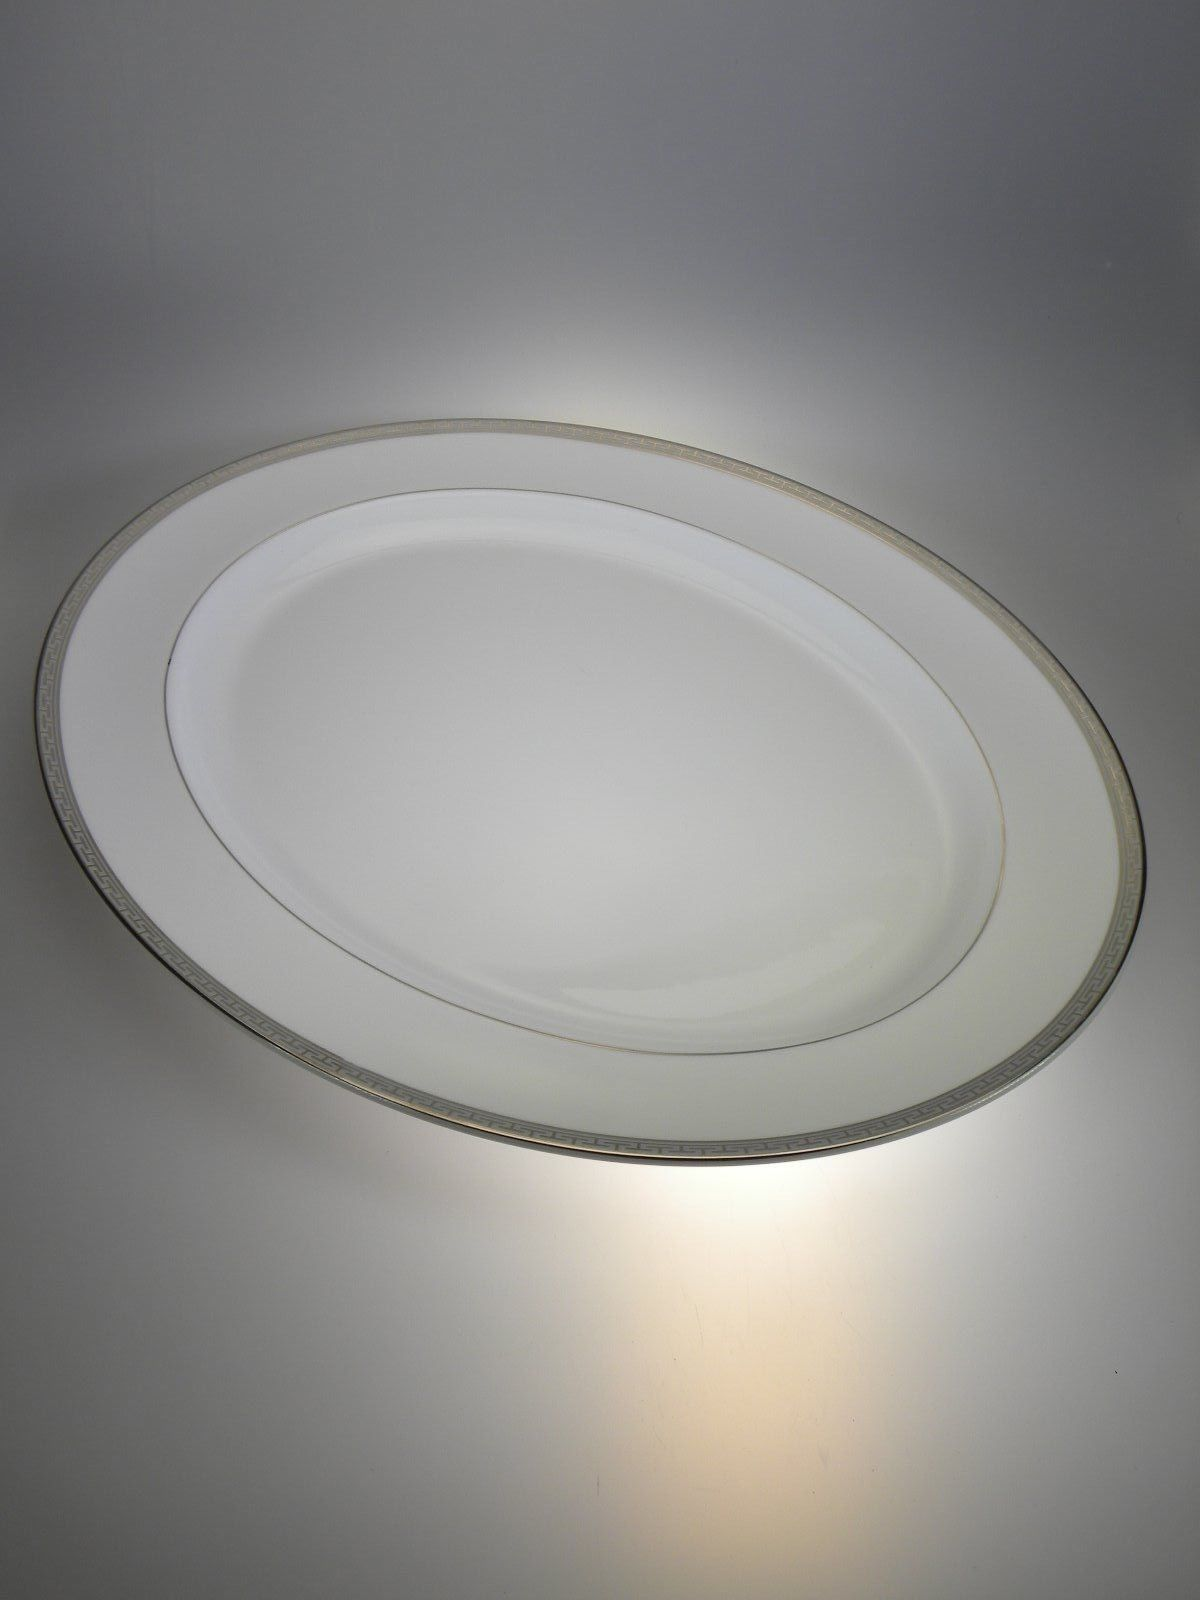 """Royal Worcester Corinth Platinum Oval Platter 16"""" NEW WITH TAGS Made in England - $33.62"""